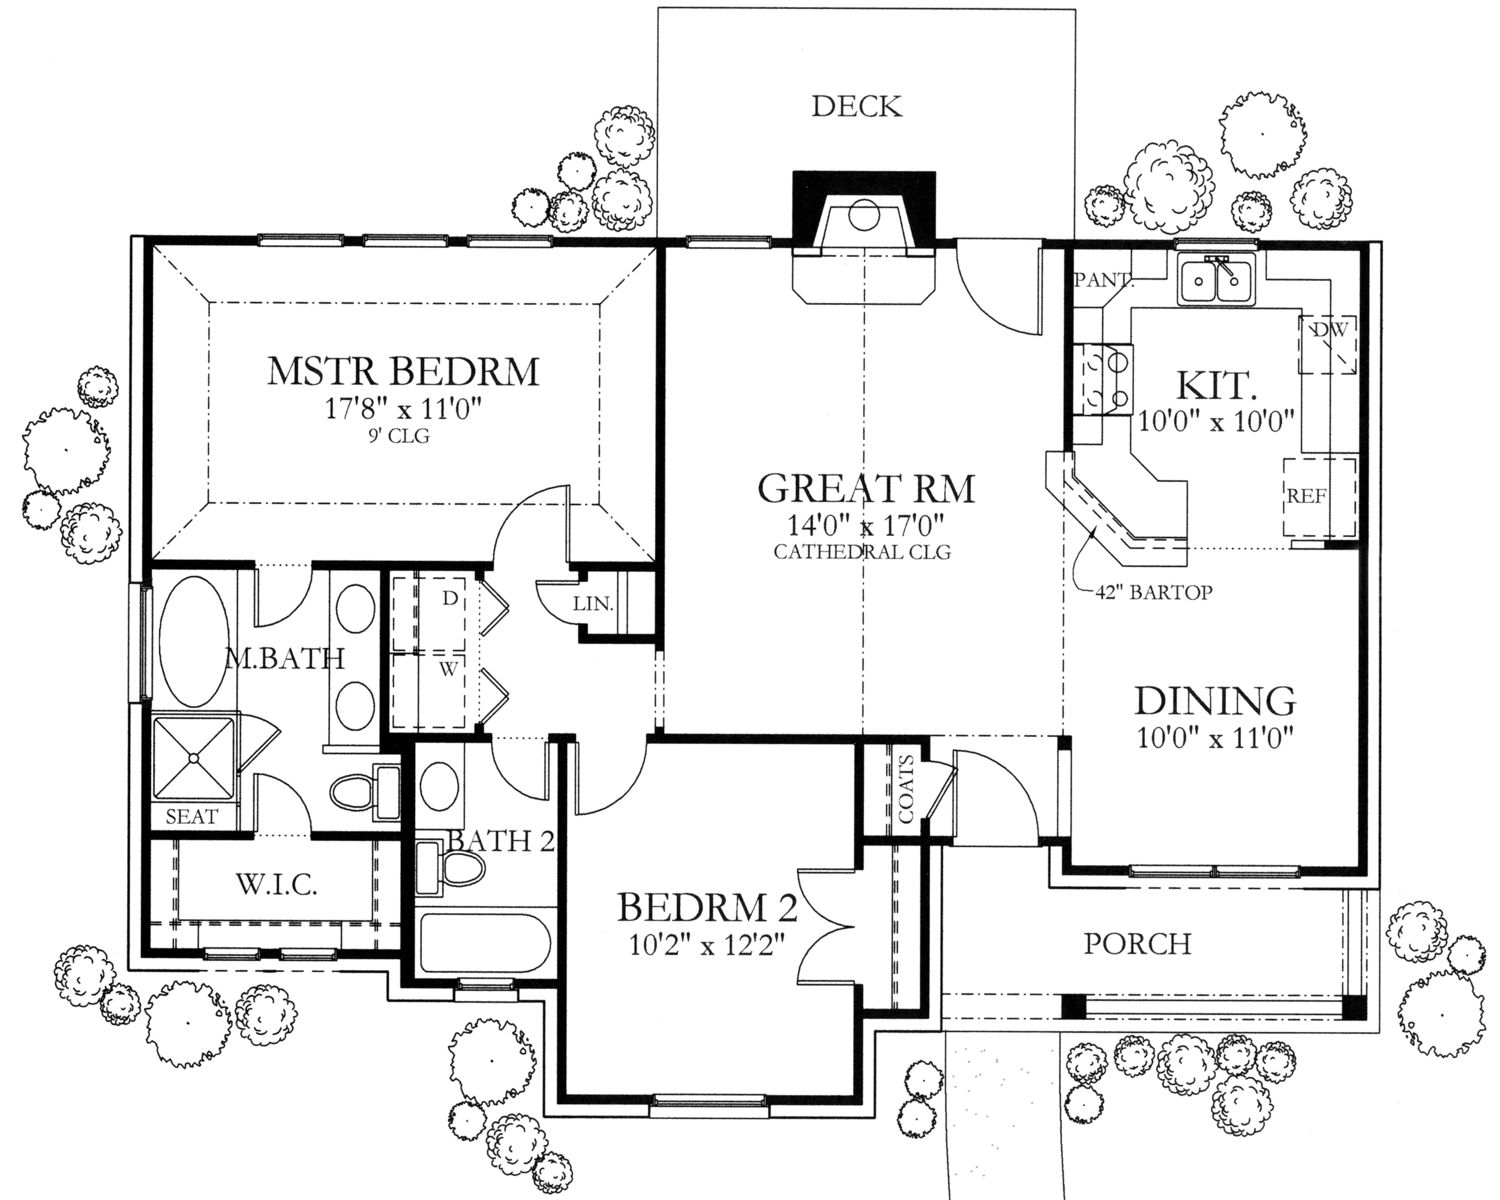 Texas Style Home Plan 2 Bedrms, 2 Baths 1092 Sq Ft